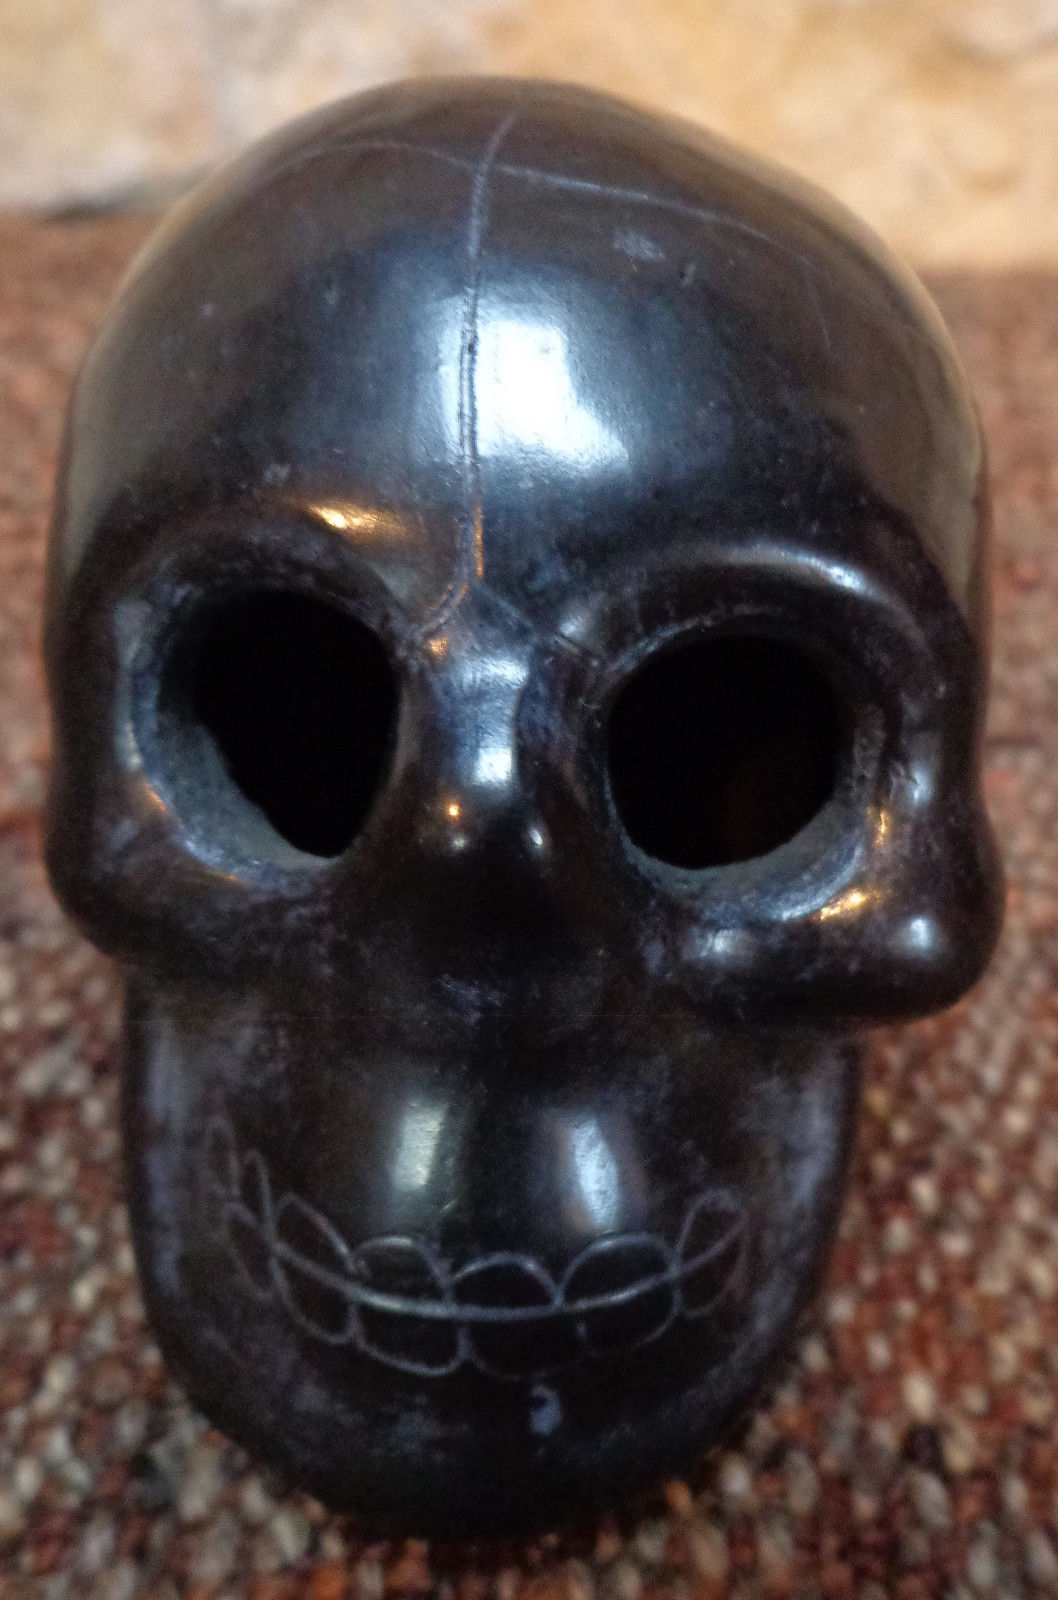 Mexican Oaxaca Black Clay Pottery Skull Figurine Accessories